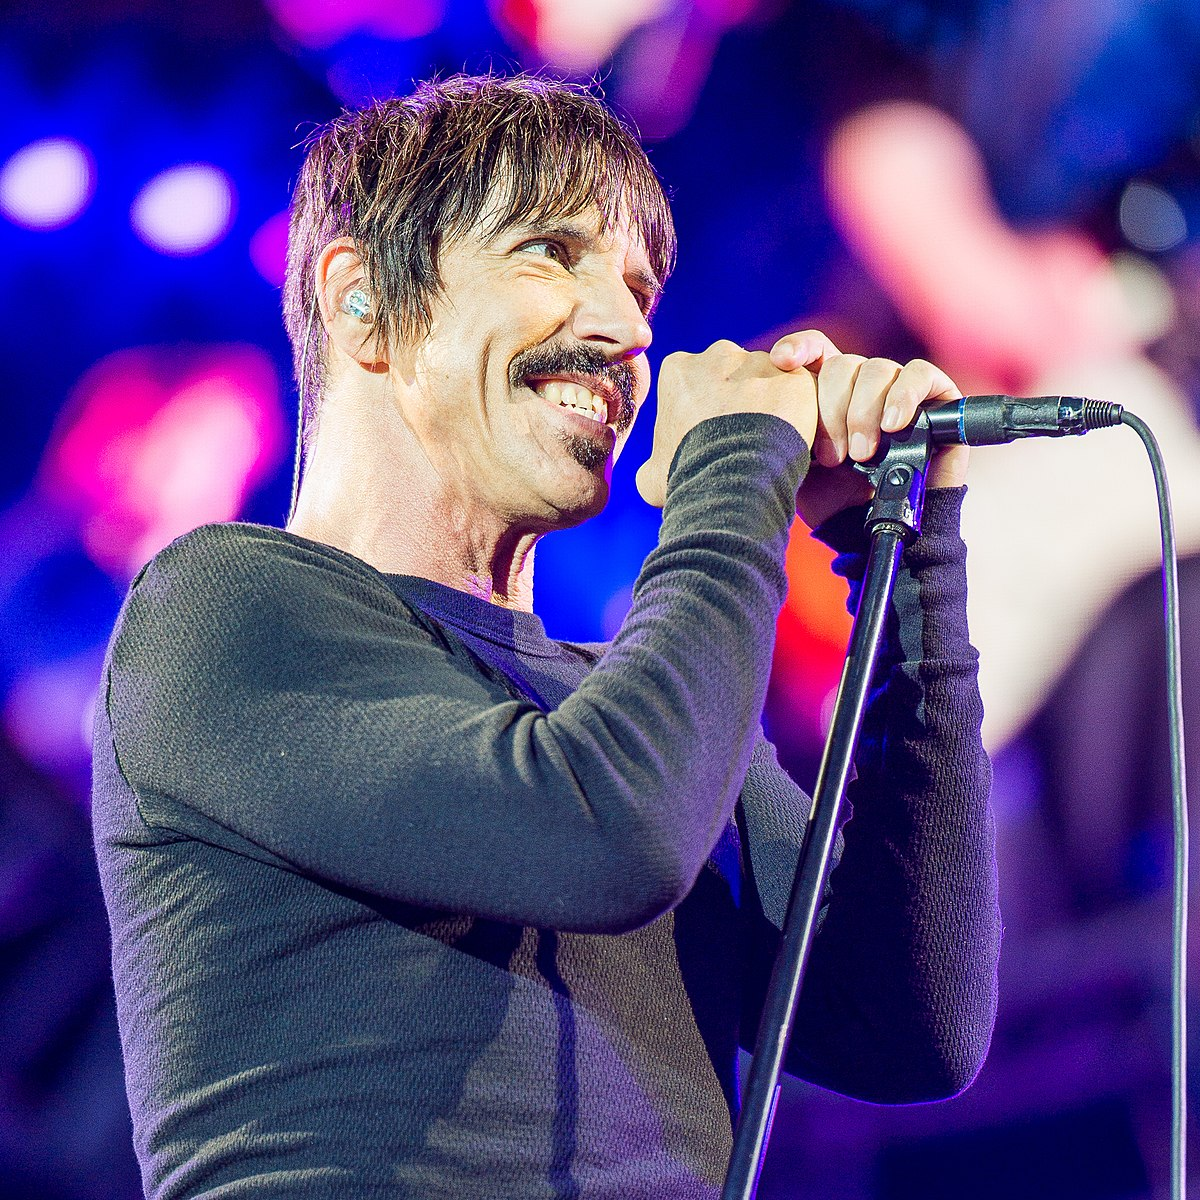 Anthony Kiedis - Wikipedia